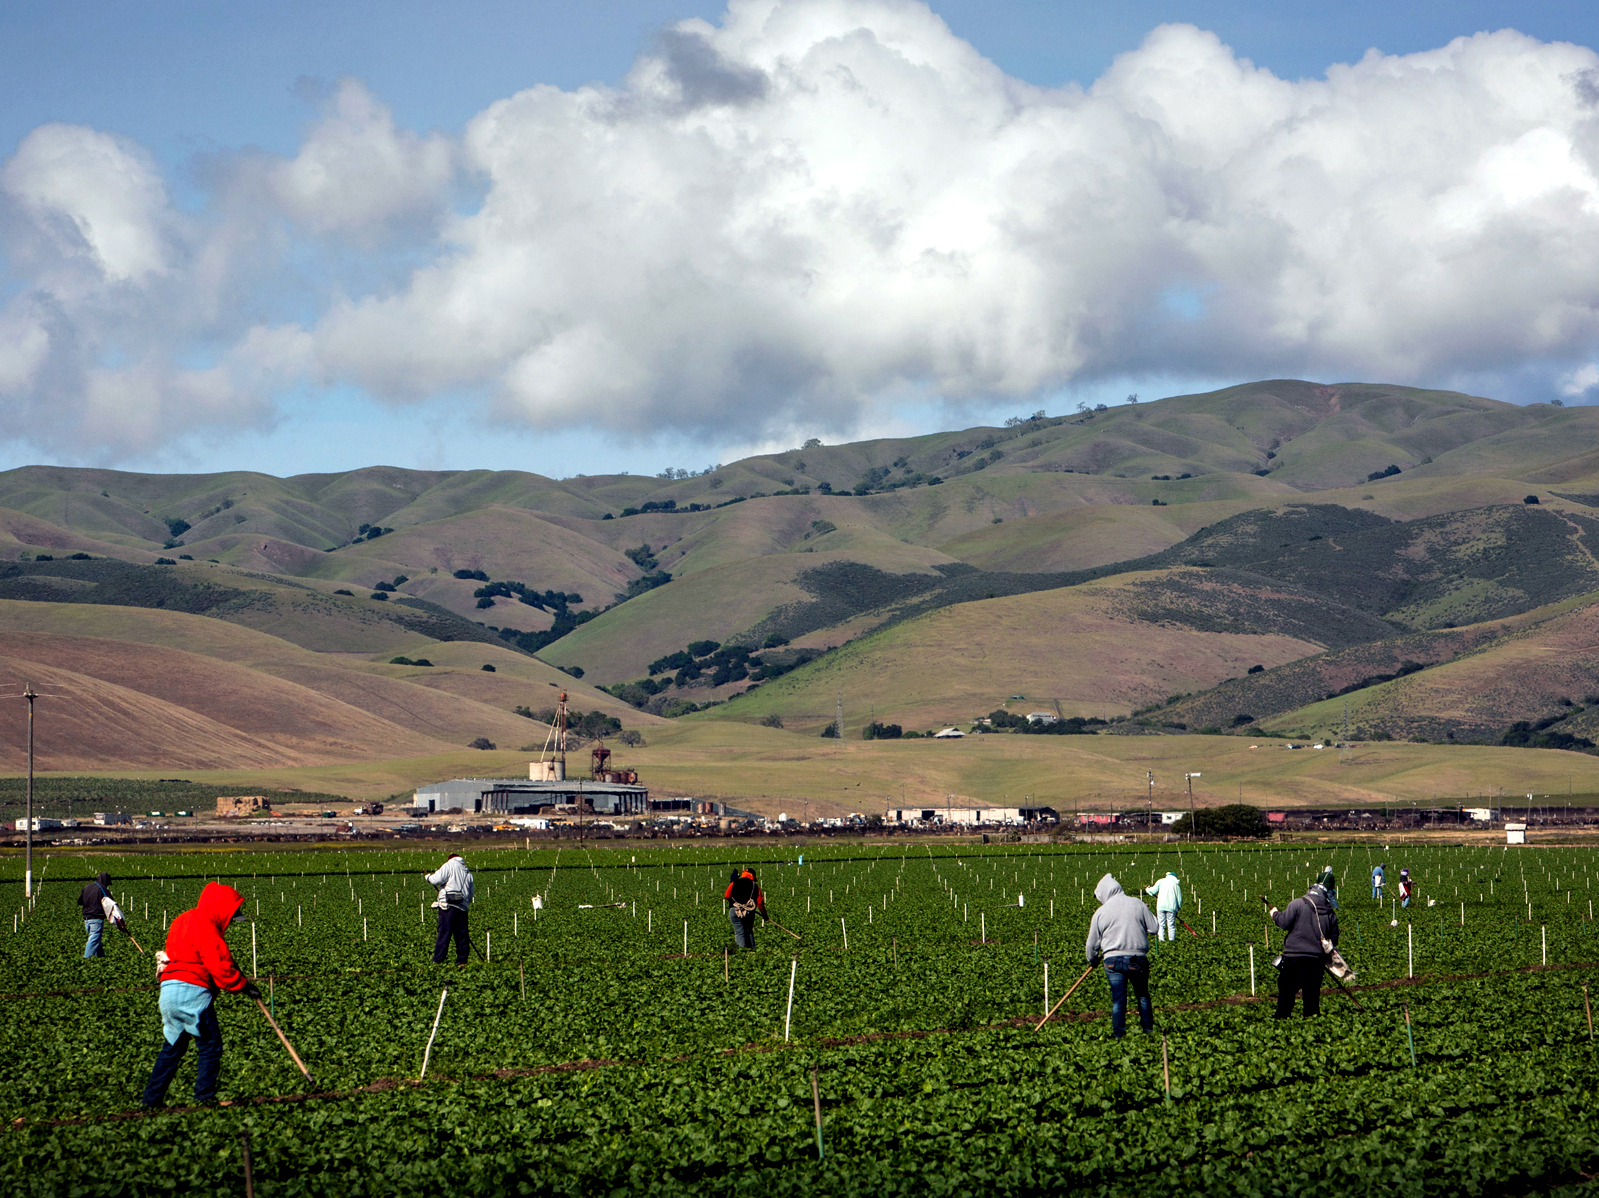 California's Drought Isn't Making Food Cost More. Here's Why